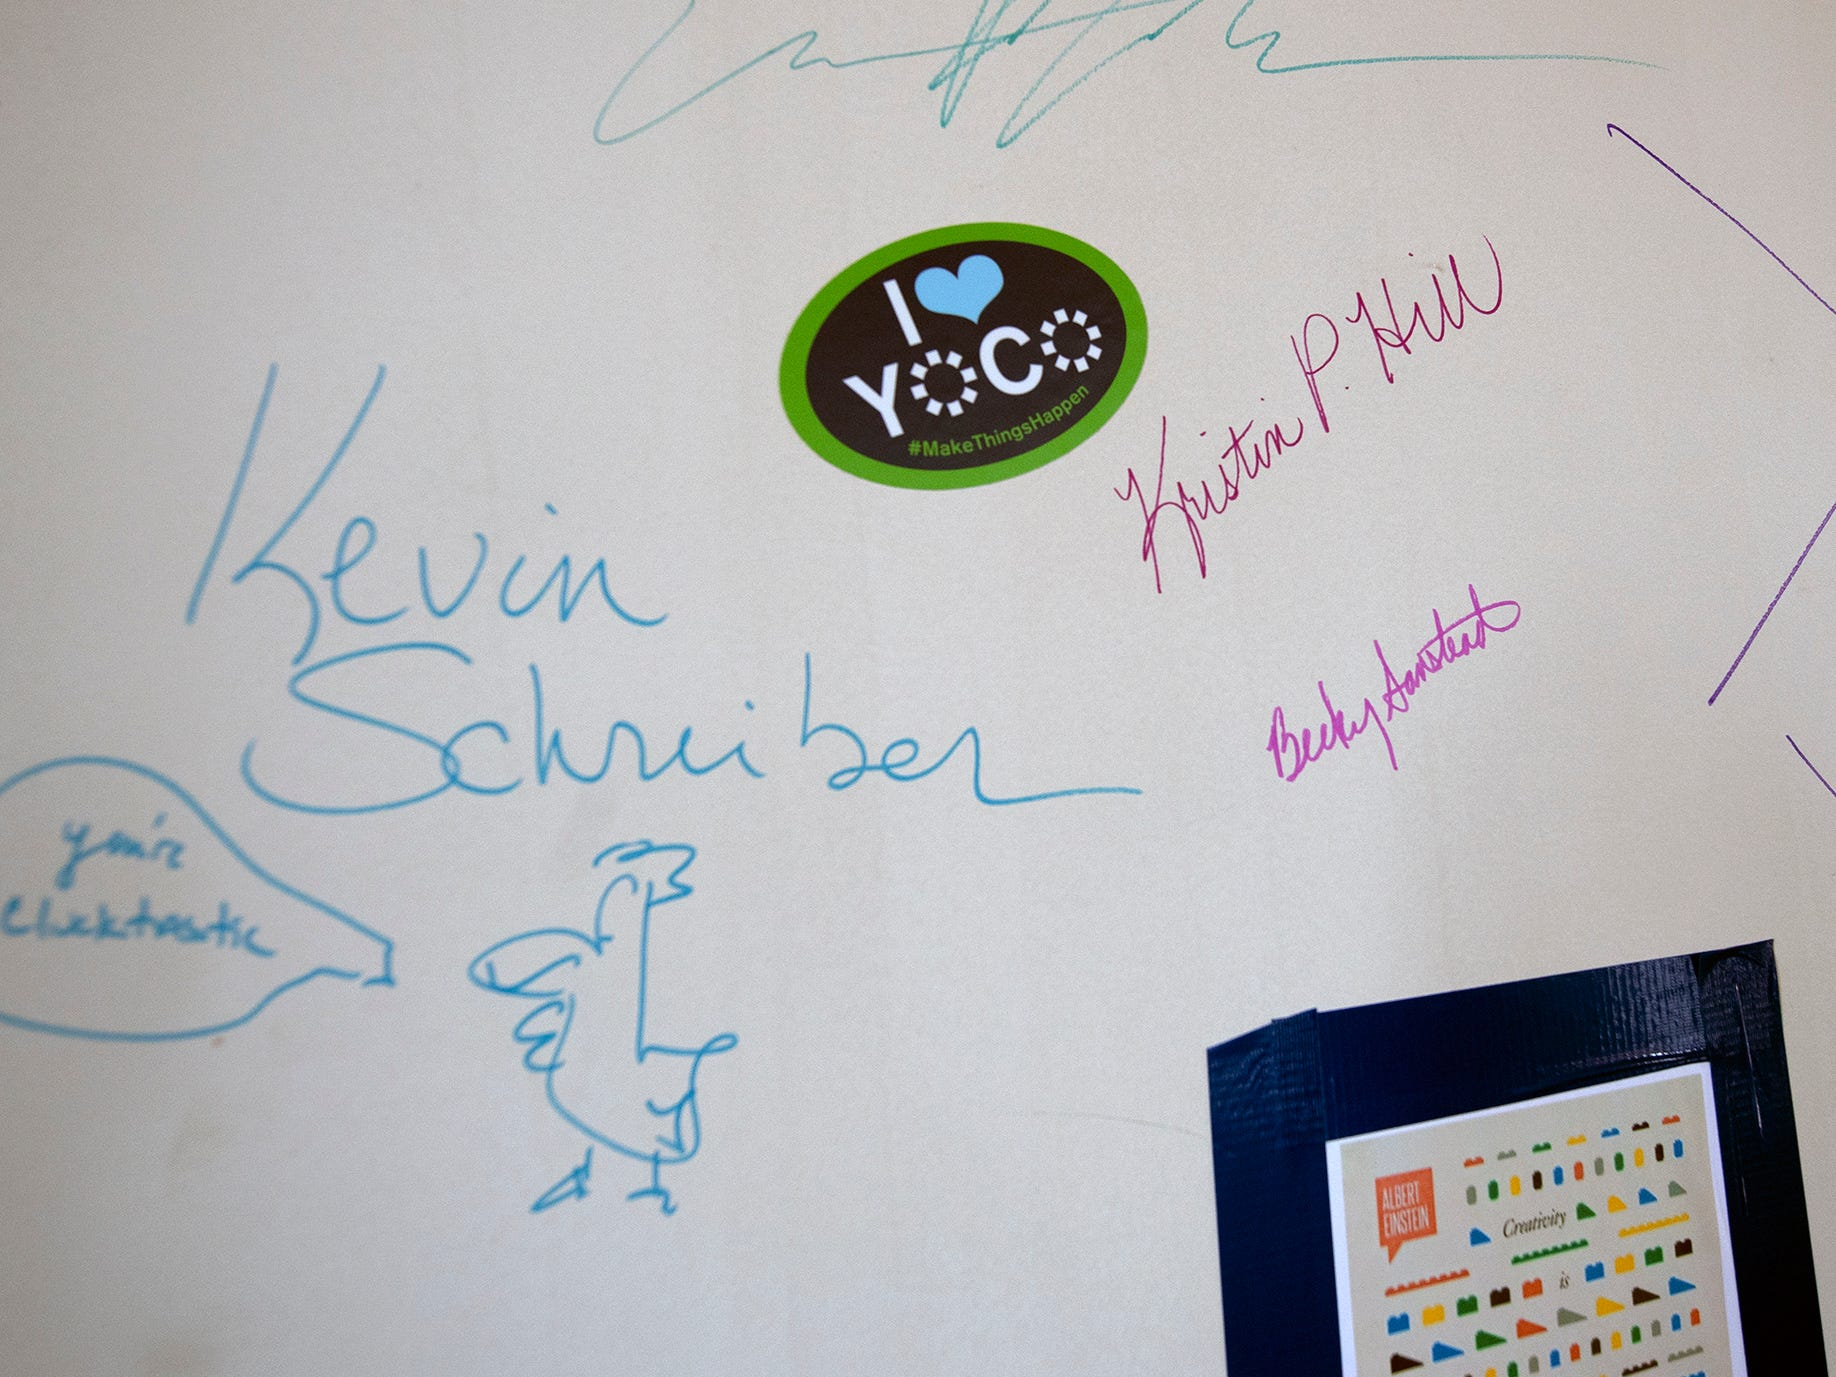 Notable visitors have signed a wall during the fund raising. The York Armory, a brick fortress built in 1913 once used by the Pa. National Guard, will soon be transformed into Keystone Kidspace, an educational experience for families. It's expected to open in 2020.